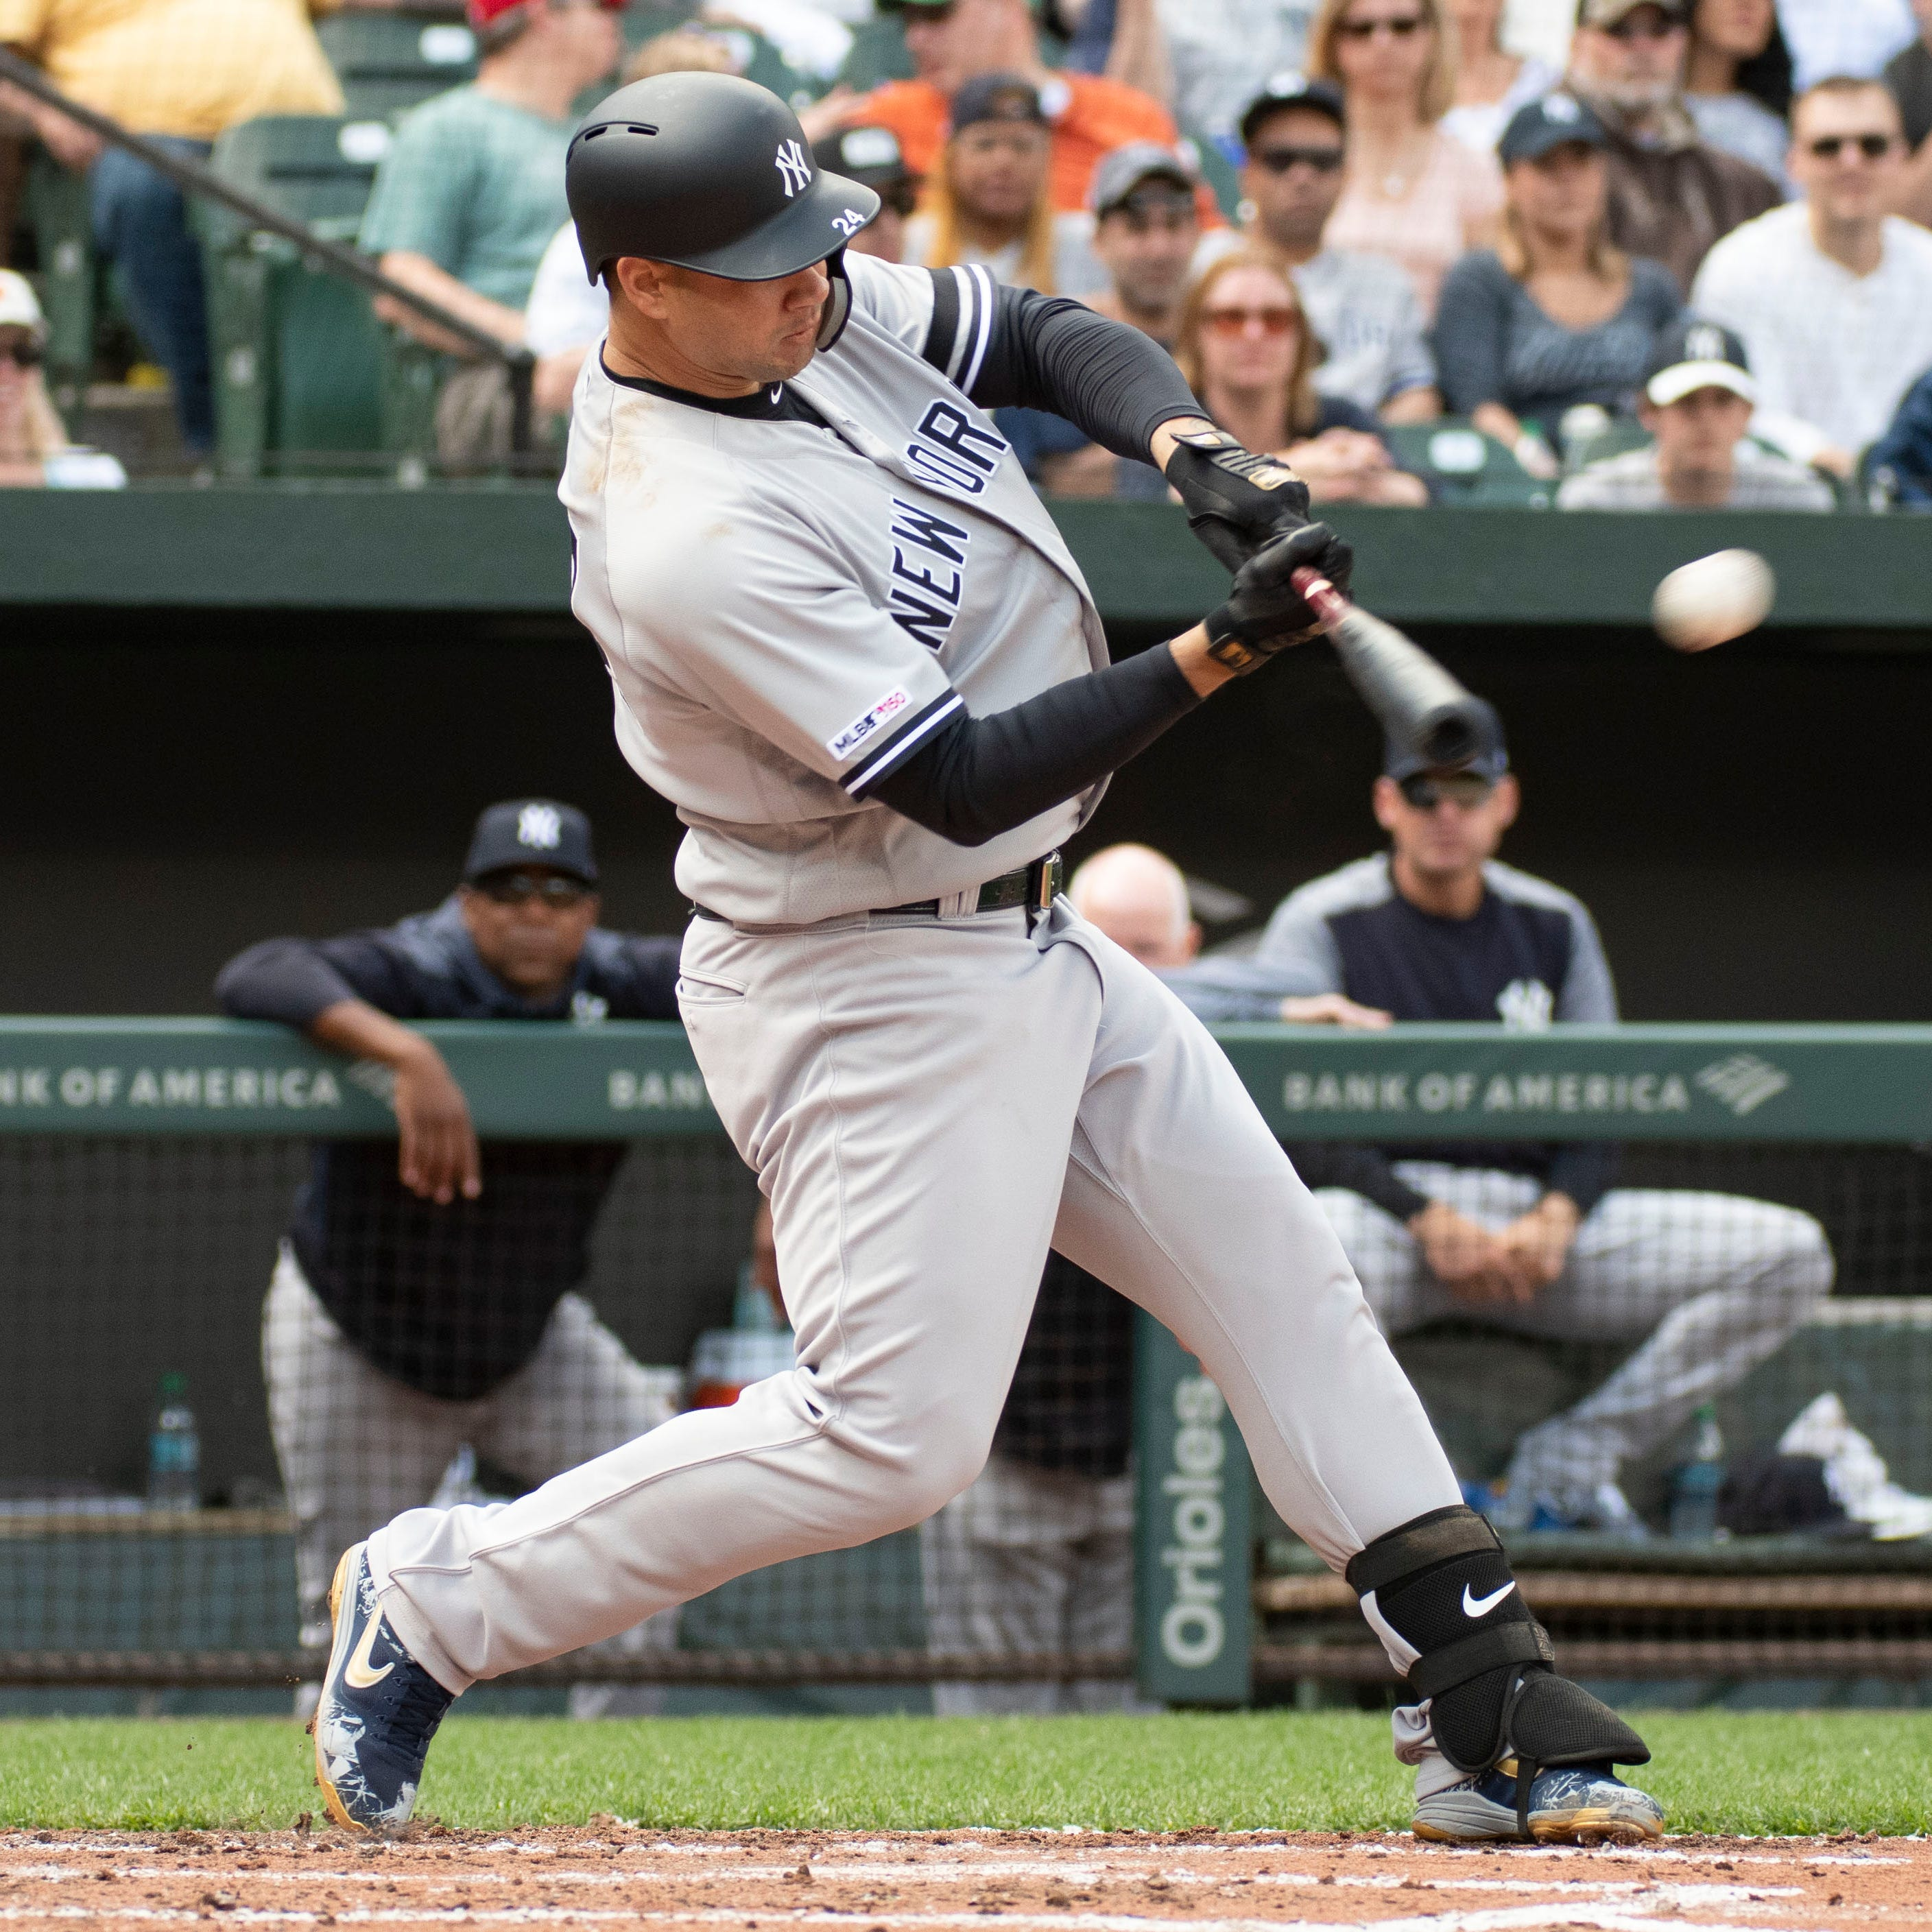 Gary Sanchez slugs three home runs, powering the Yankees to a three-game sweep at Baltimore